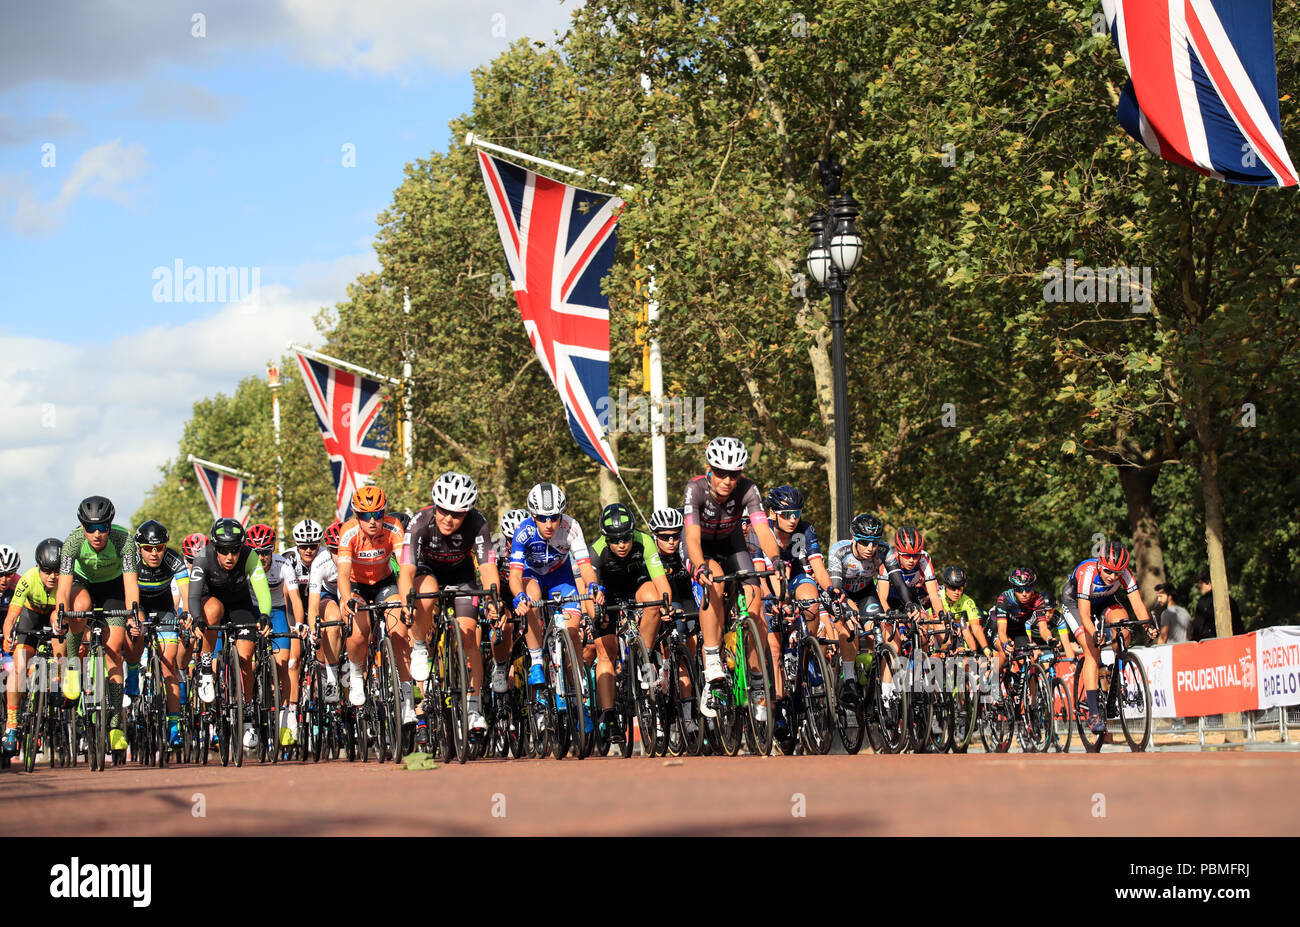 The Prudential RideLondon Classique during day one of the